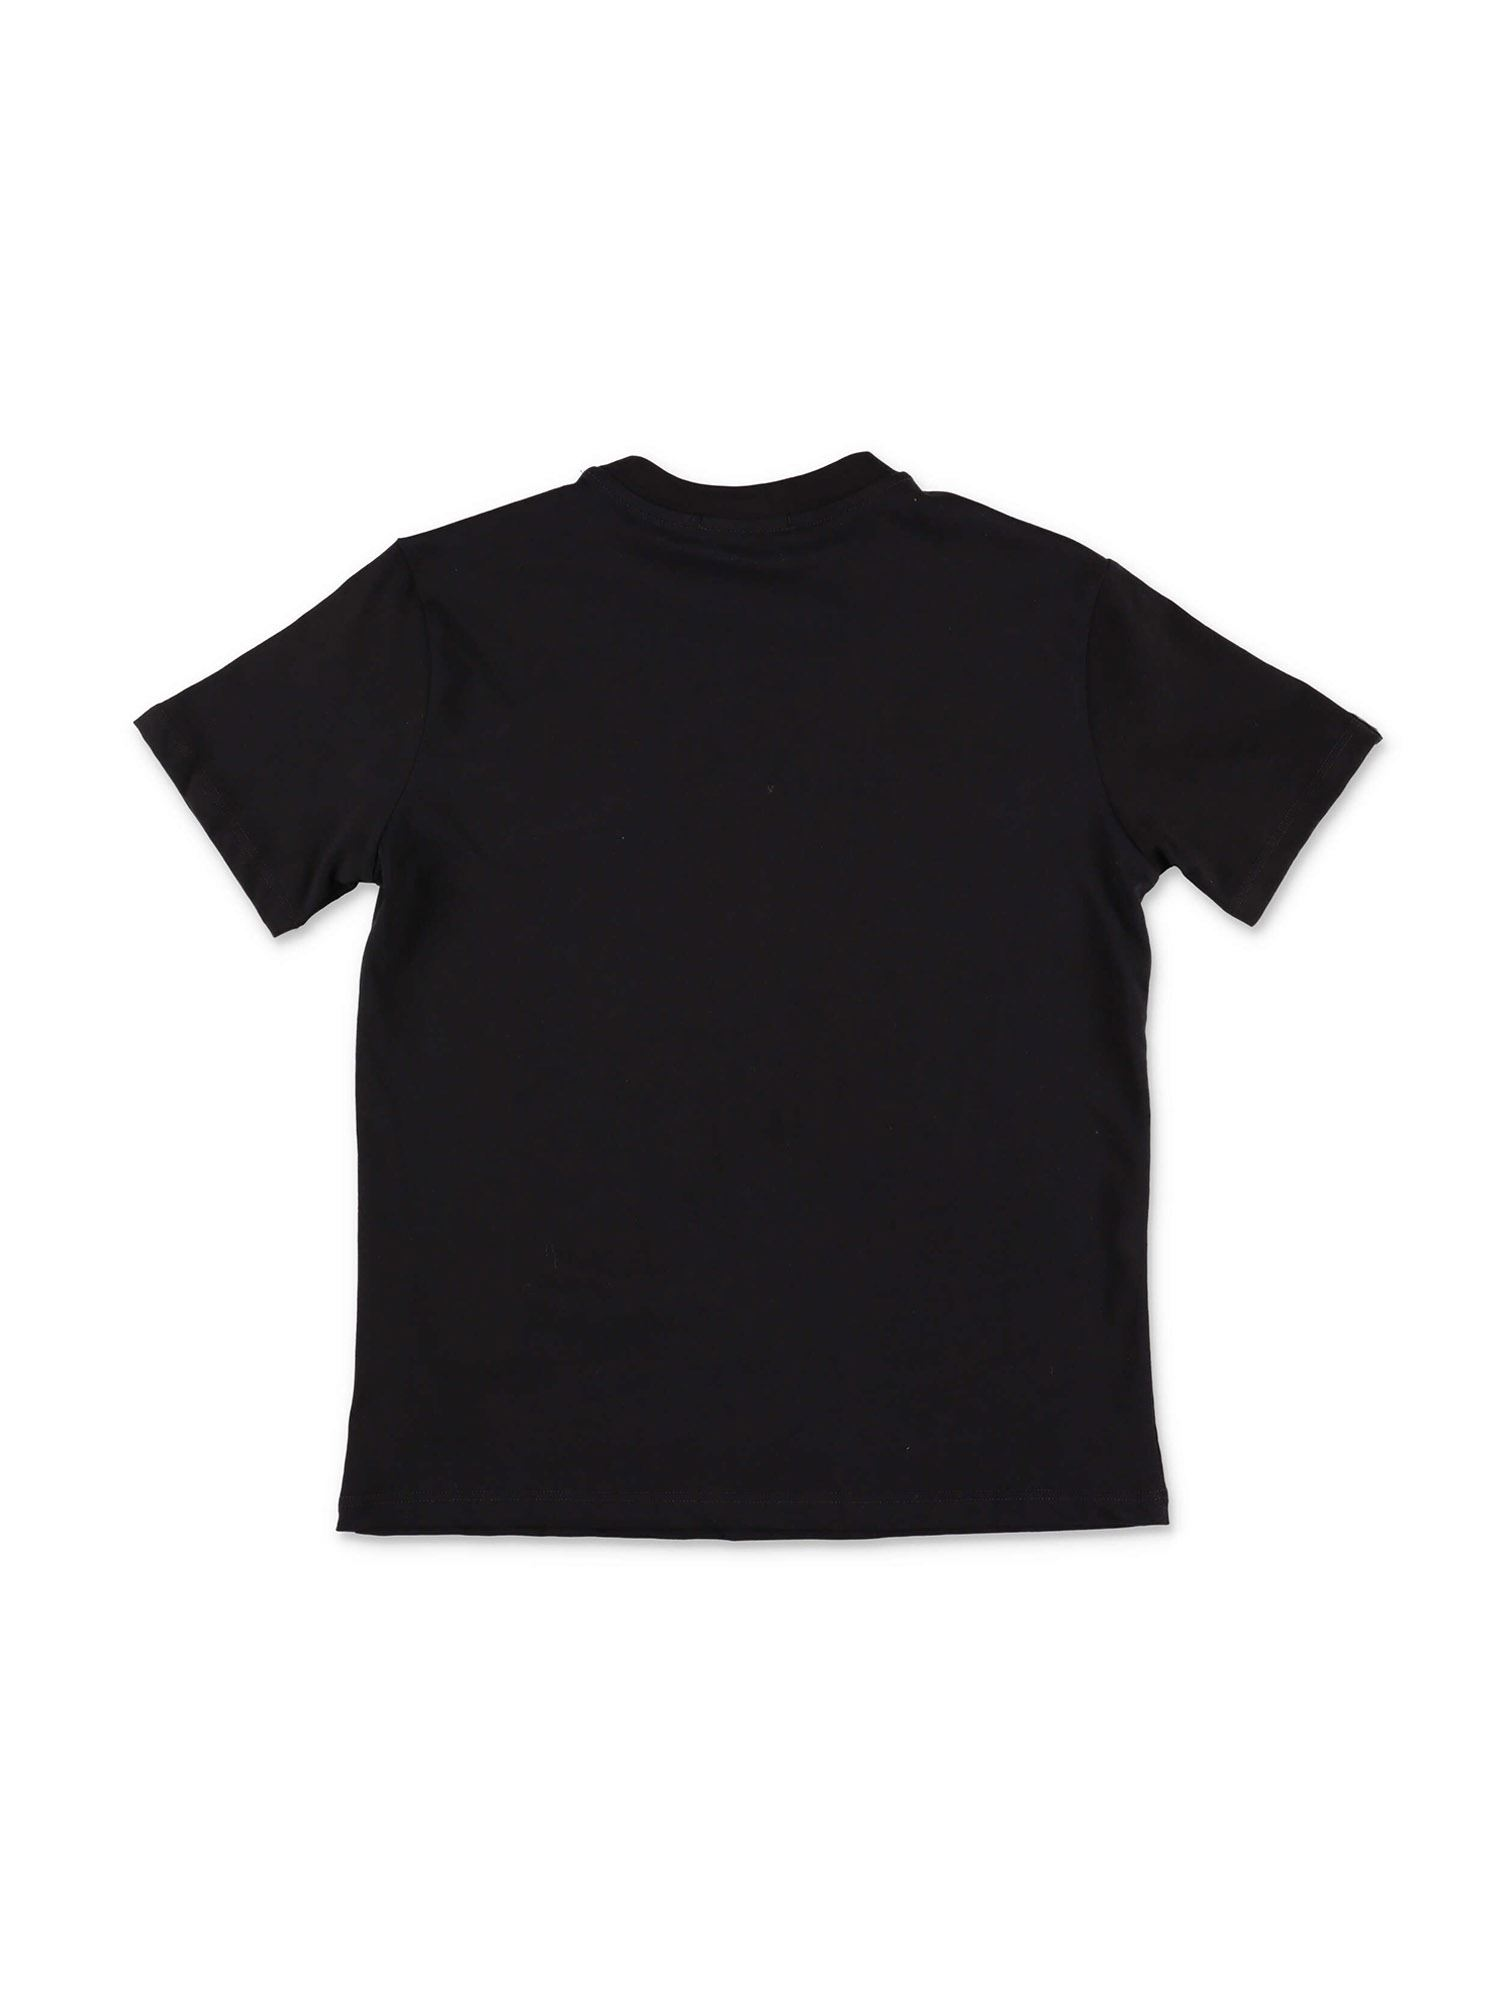 MSGM Cottons PRINTED T-SHIRT IN BLACK AND YELLOW